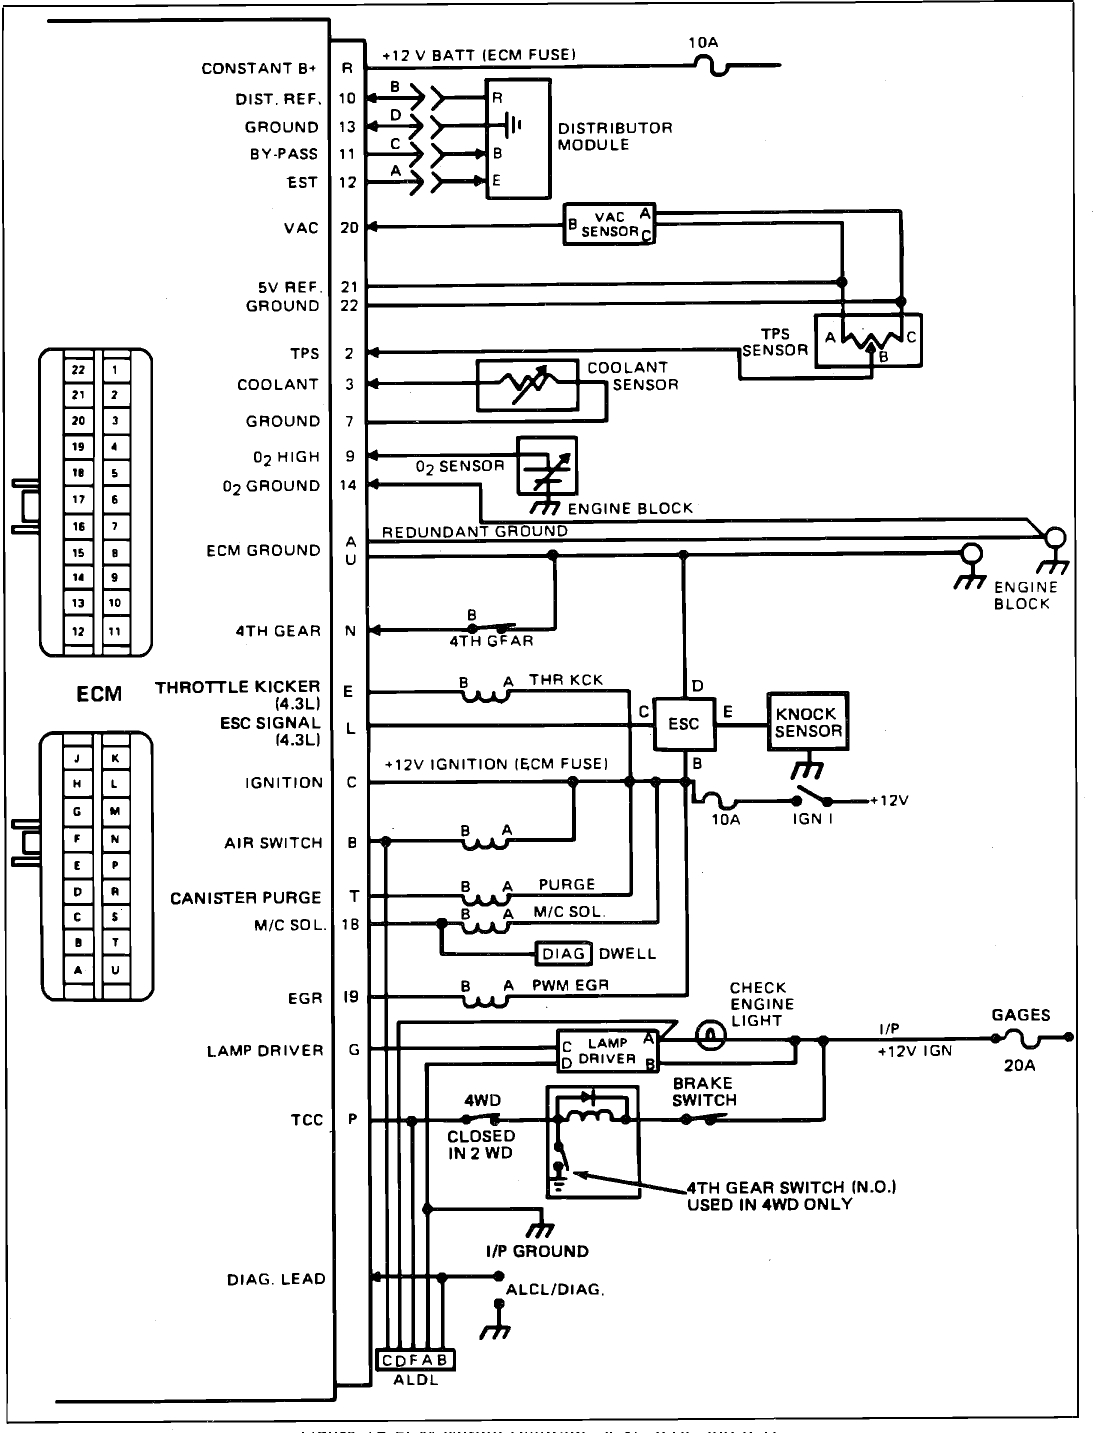 Chevy G20 Fuse Box Location Wiring Library Diagram 1993 Truck I Need A With Colors 1995